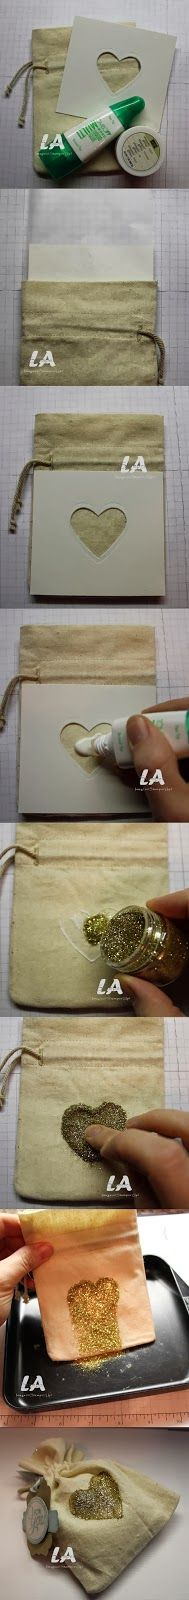 Stampin' Up!, Muslin Bags with Gold Glitter Heart.  LA Stamper